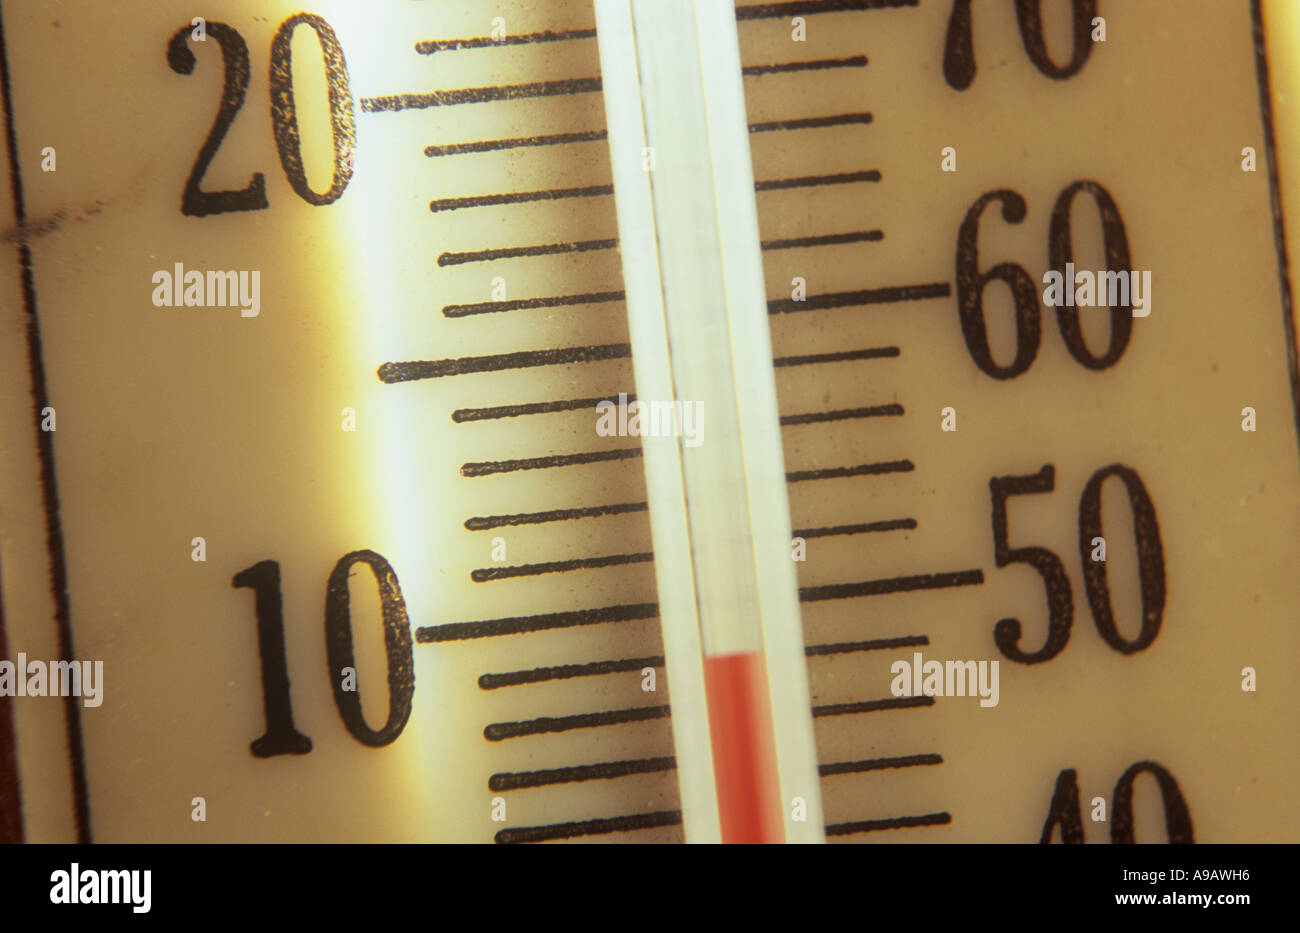 Close up detail of a backlit thermometer registering 9 degrees Celsius or 48 degrees Fahrenheit - Stock Image